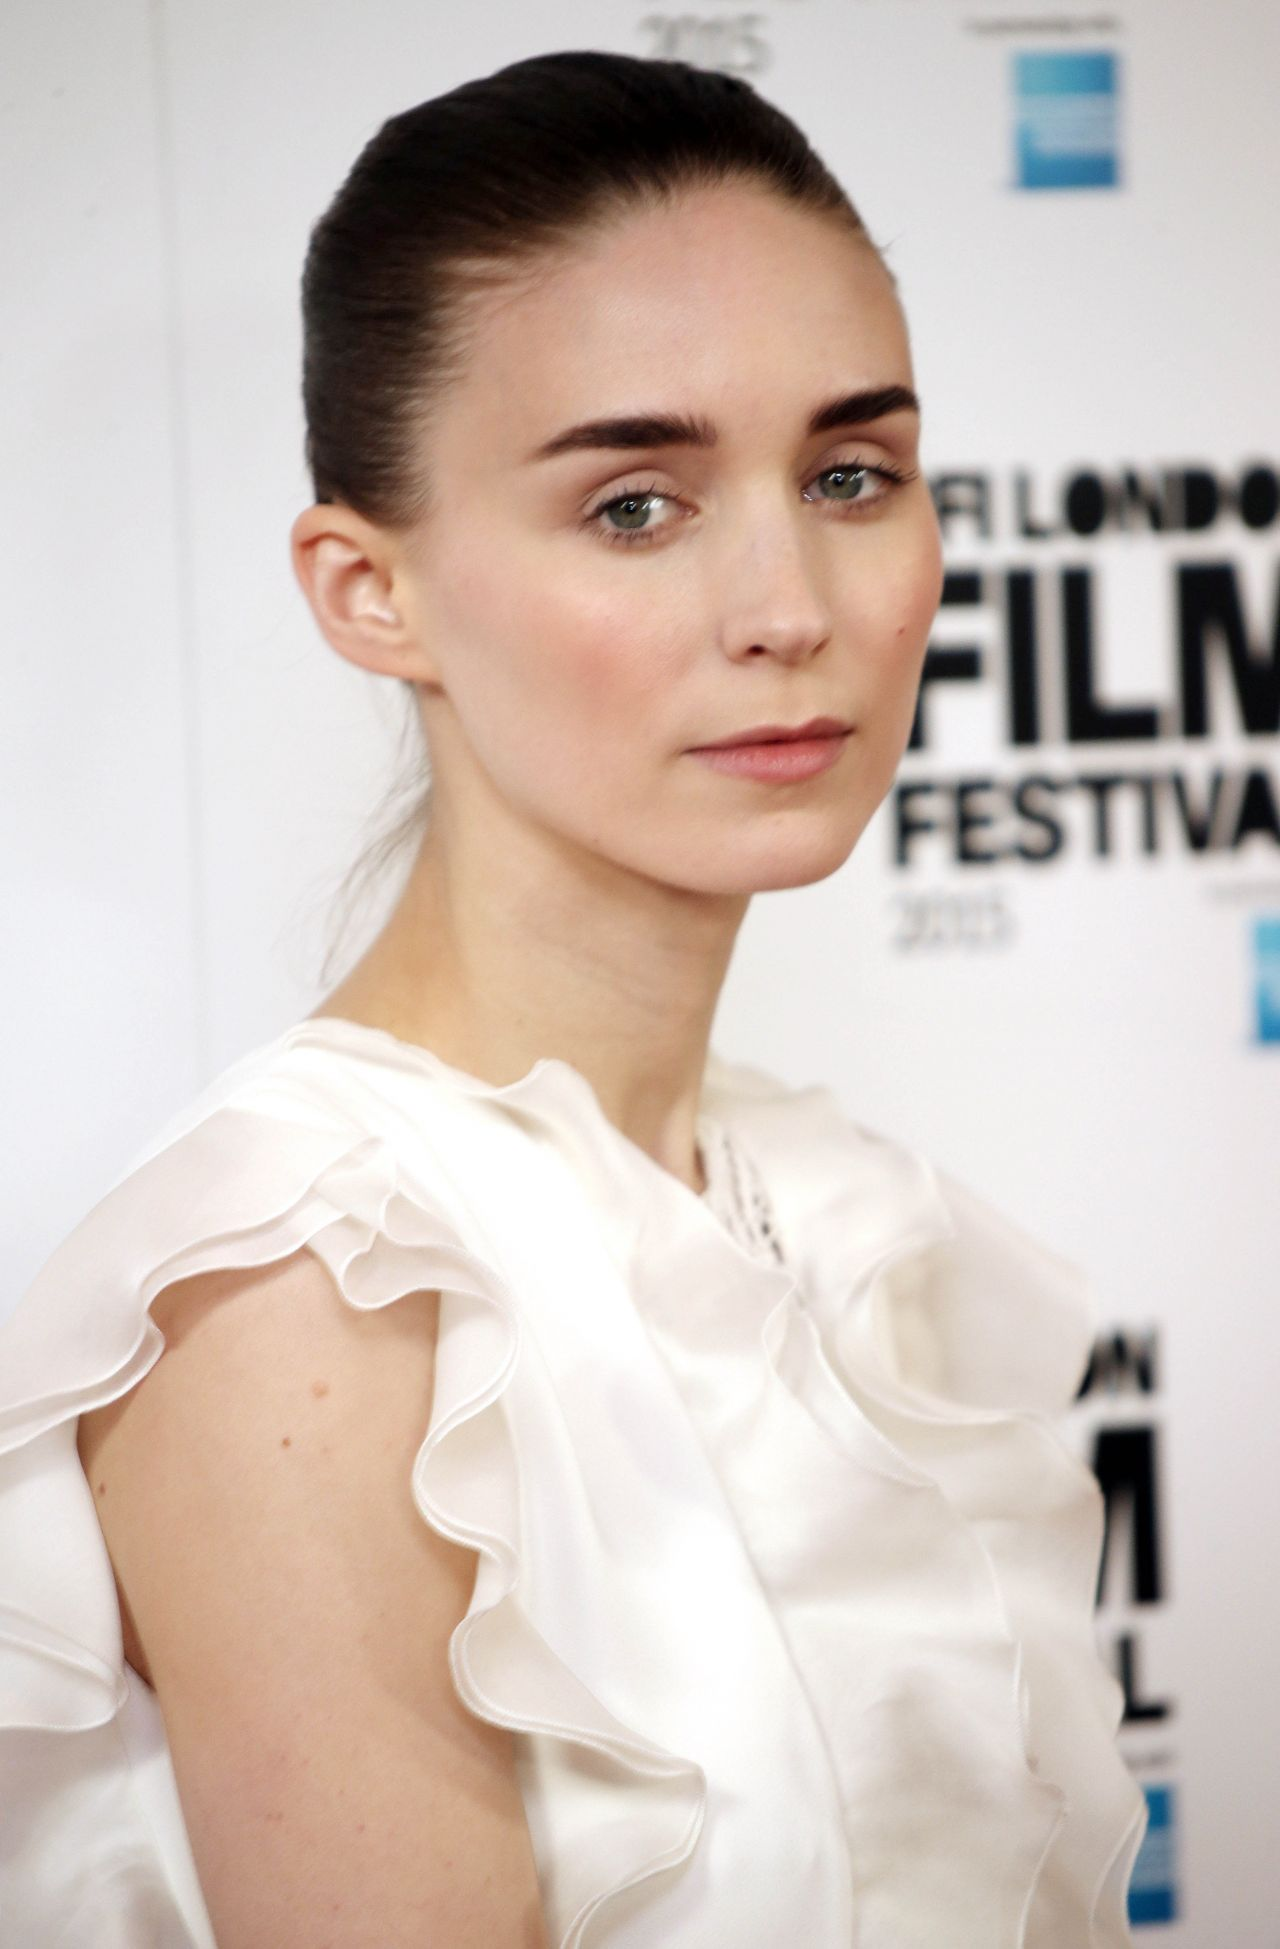 rooney-mara-carol-photocall-bfi-london-film-festival_5